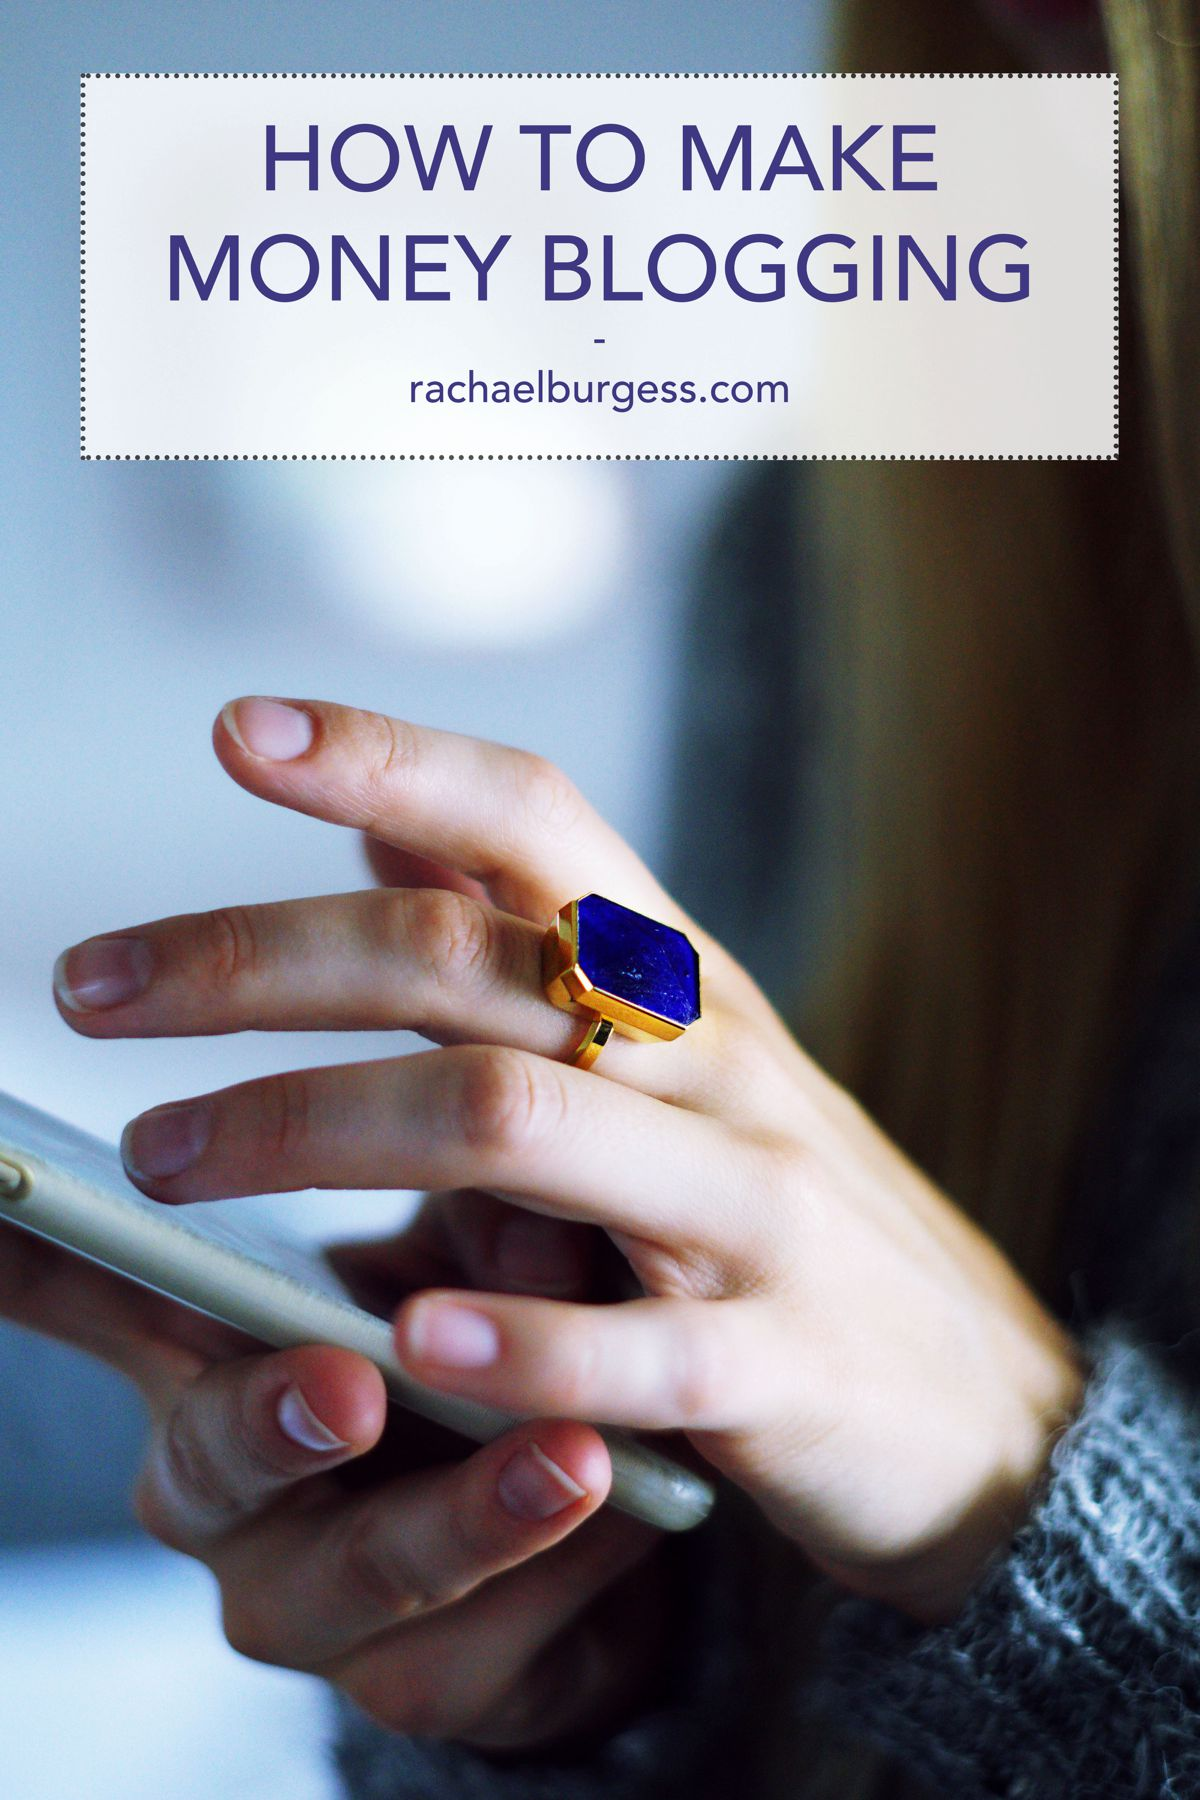 Making Money Blogging | What is an Influencer Agency? by Rachael Burgess